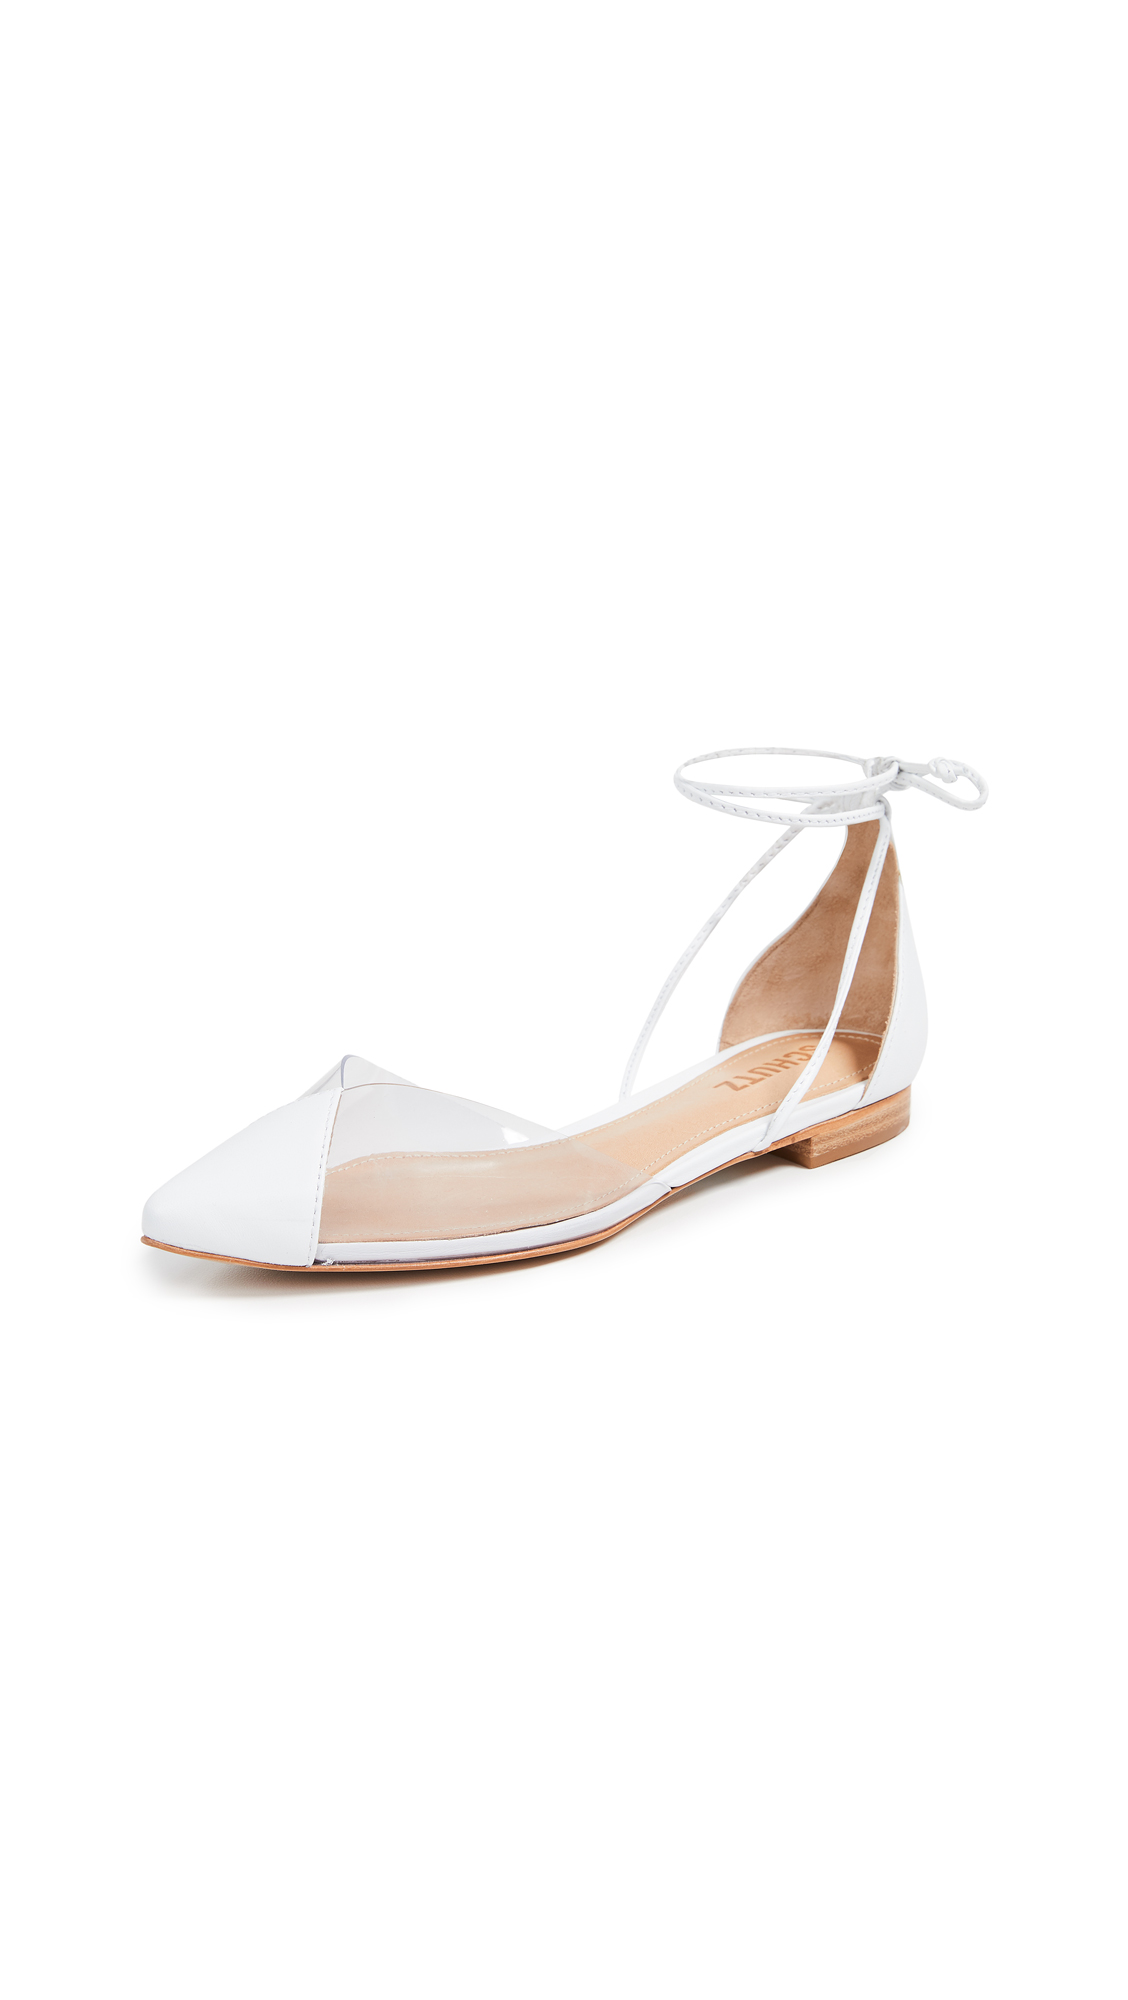 Schutz Merry Point Toe Flats - White/Transparent